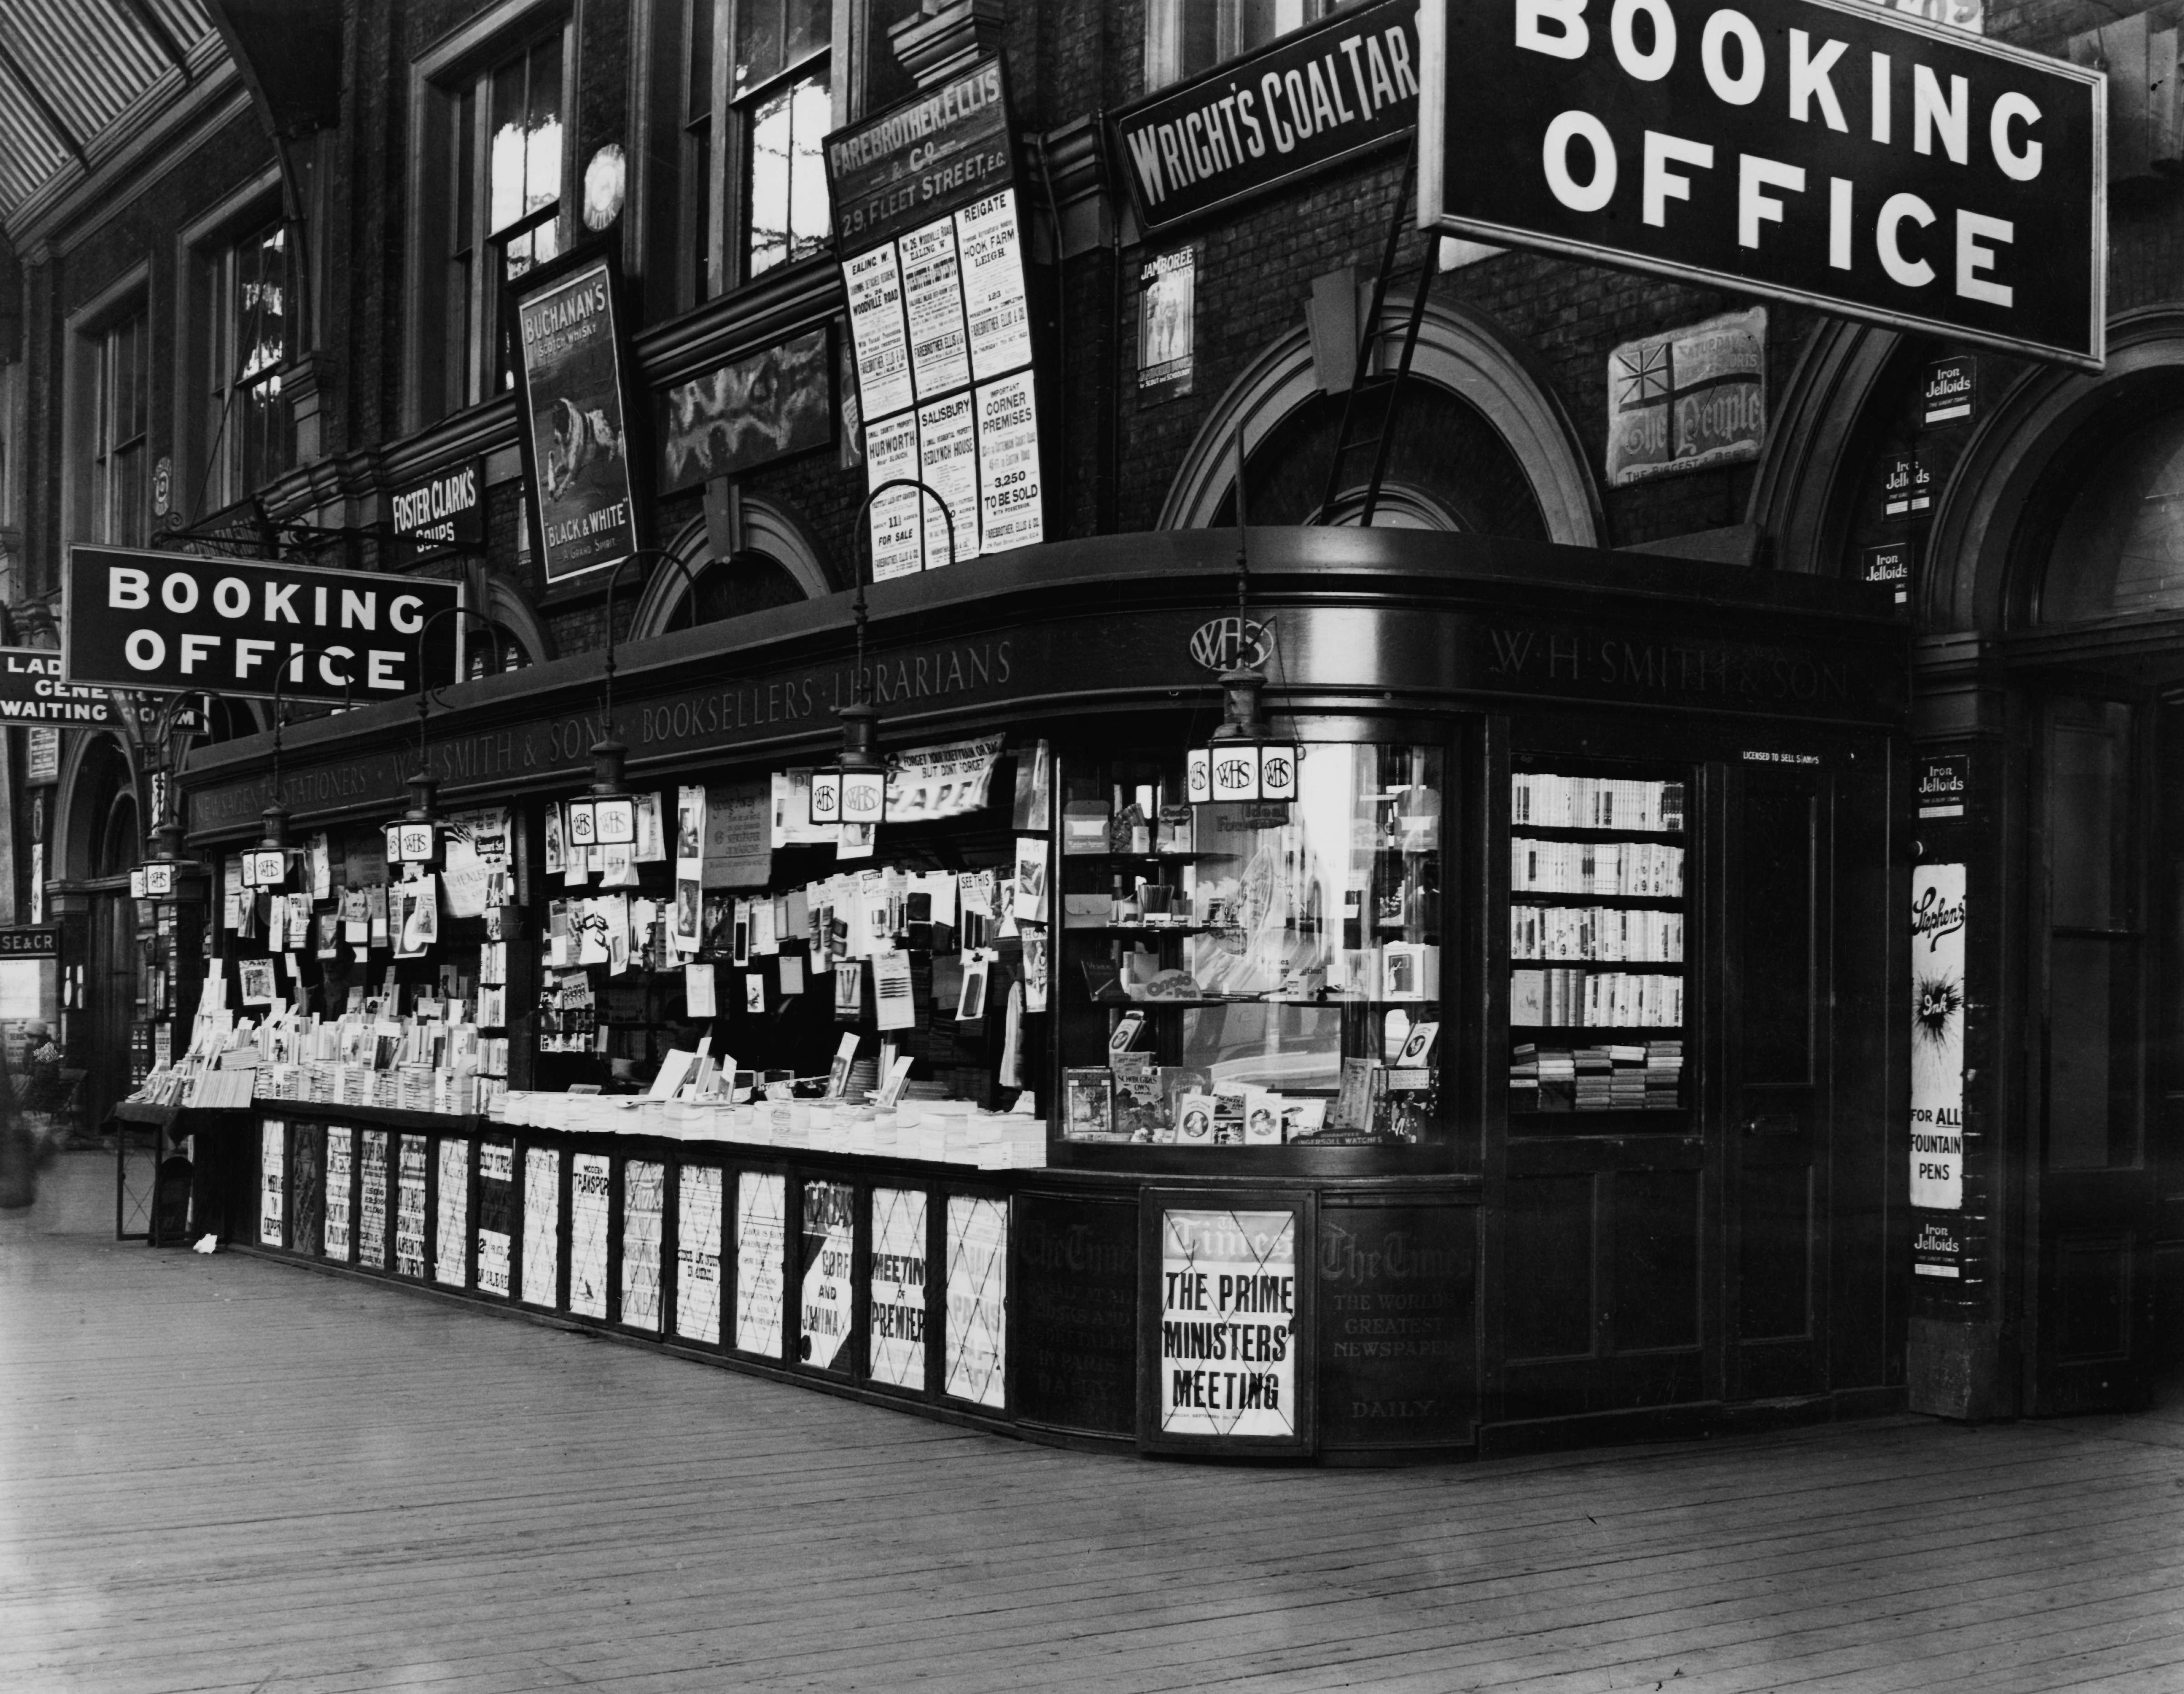 The W.H. Smith bookstall at Victoria Railway Station, London, January 1924. (Photo by Topical Press Agency/Hulton Archive/Getty Images)